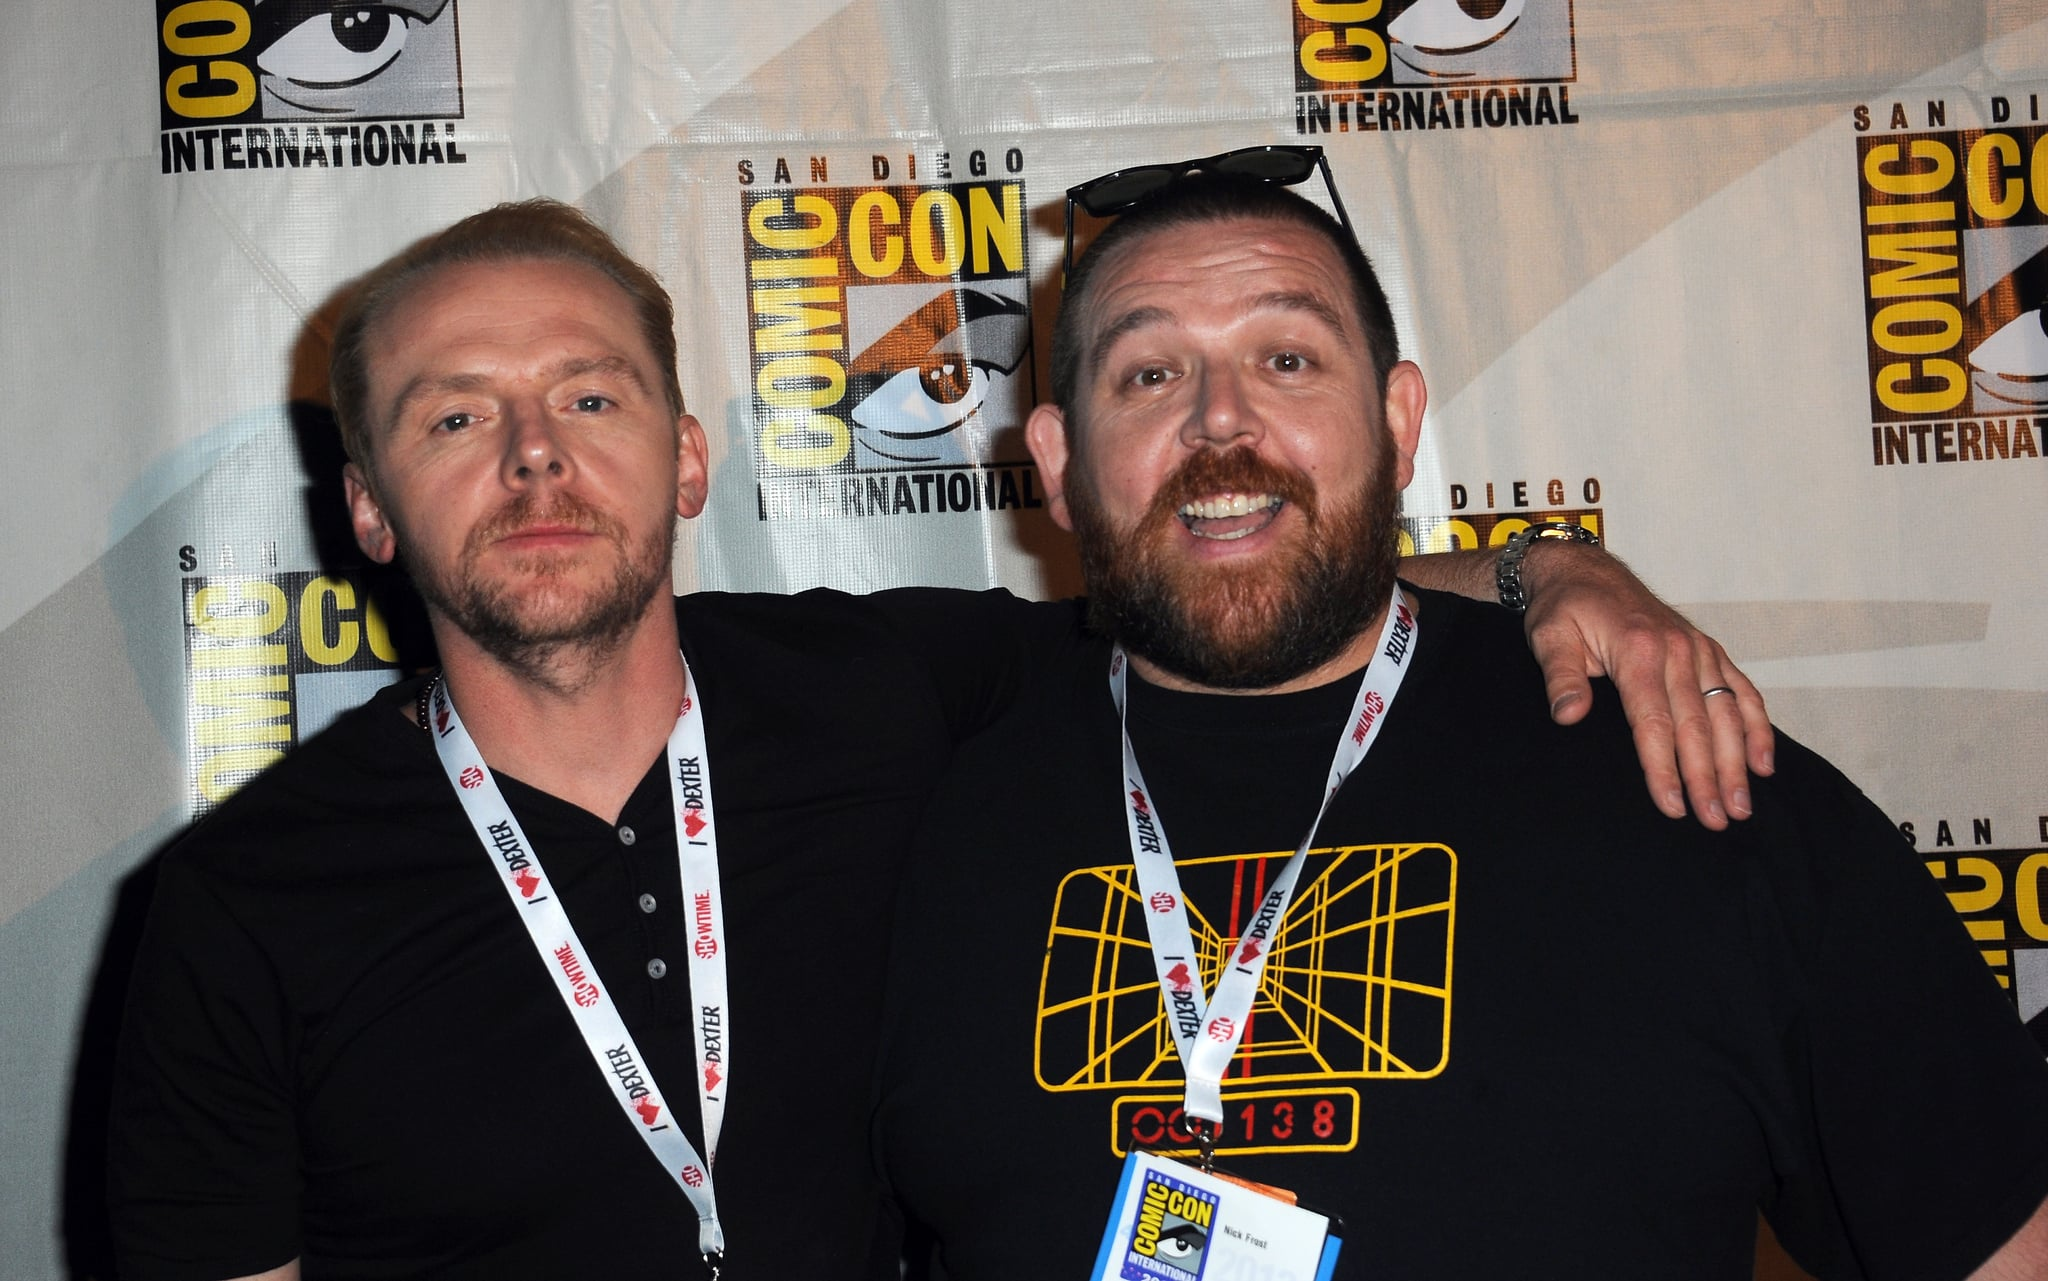 SAN DIEGO, CA - JULY 19:  Actors Simon Pegg and Nick Frost attend The World's End: Edgar Wright, Simon Pegg And Nick Frost Reunited panel as part of Comic-Con International 2013 held at San Diego Convention Centre on Friday July 19, 2012 in San Diego, California.  (Photo by Albert L. Ortega/Getty Images)